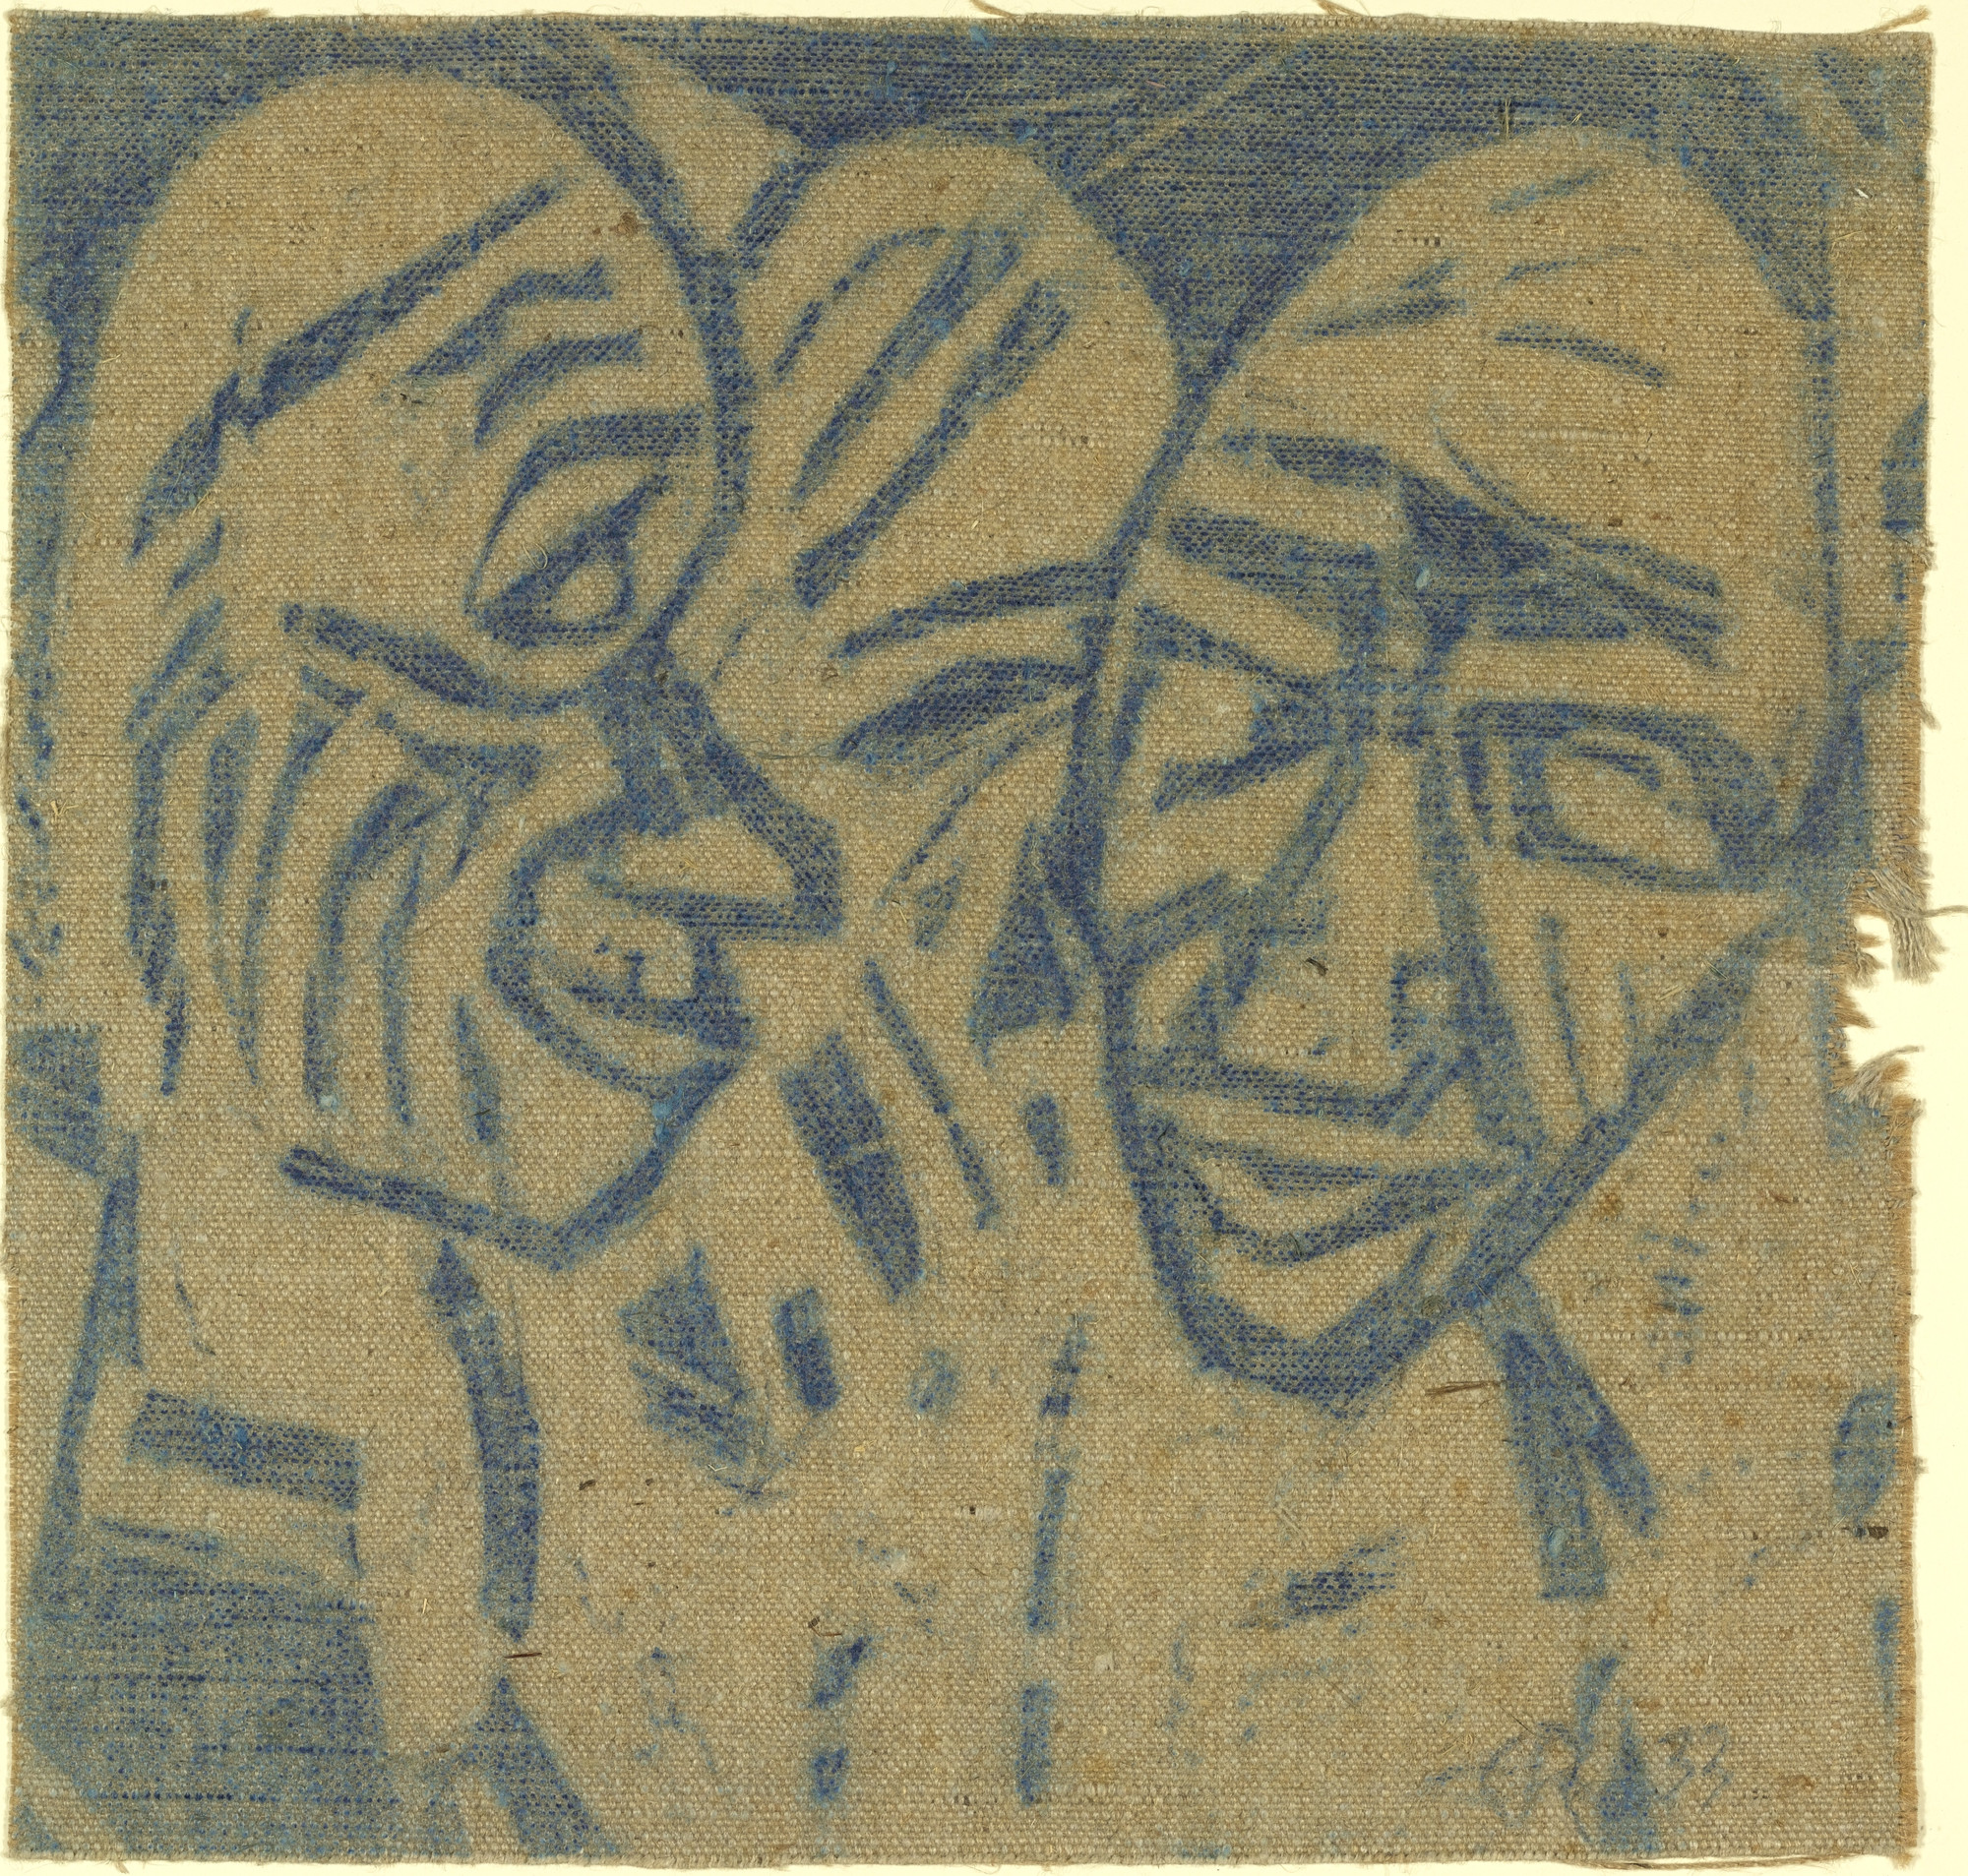 Christian Rohlfs. Large Heads (2 Heads I) [Grosse Köpfe (2 Köpfe I)]. (1921), dated 1933